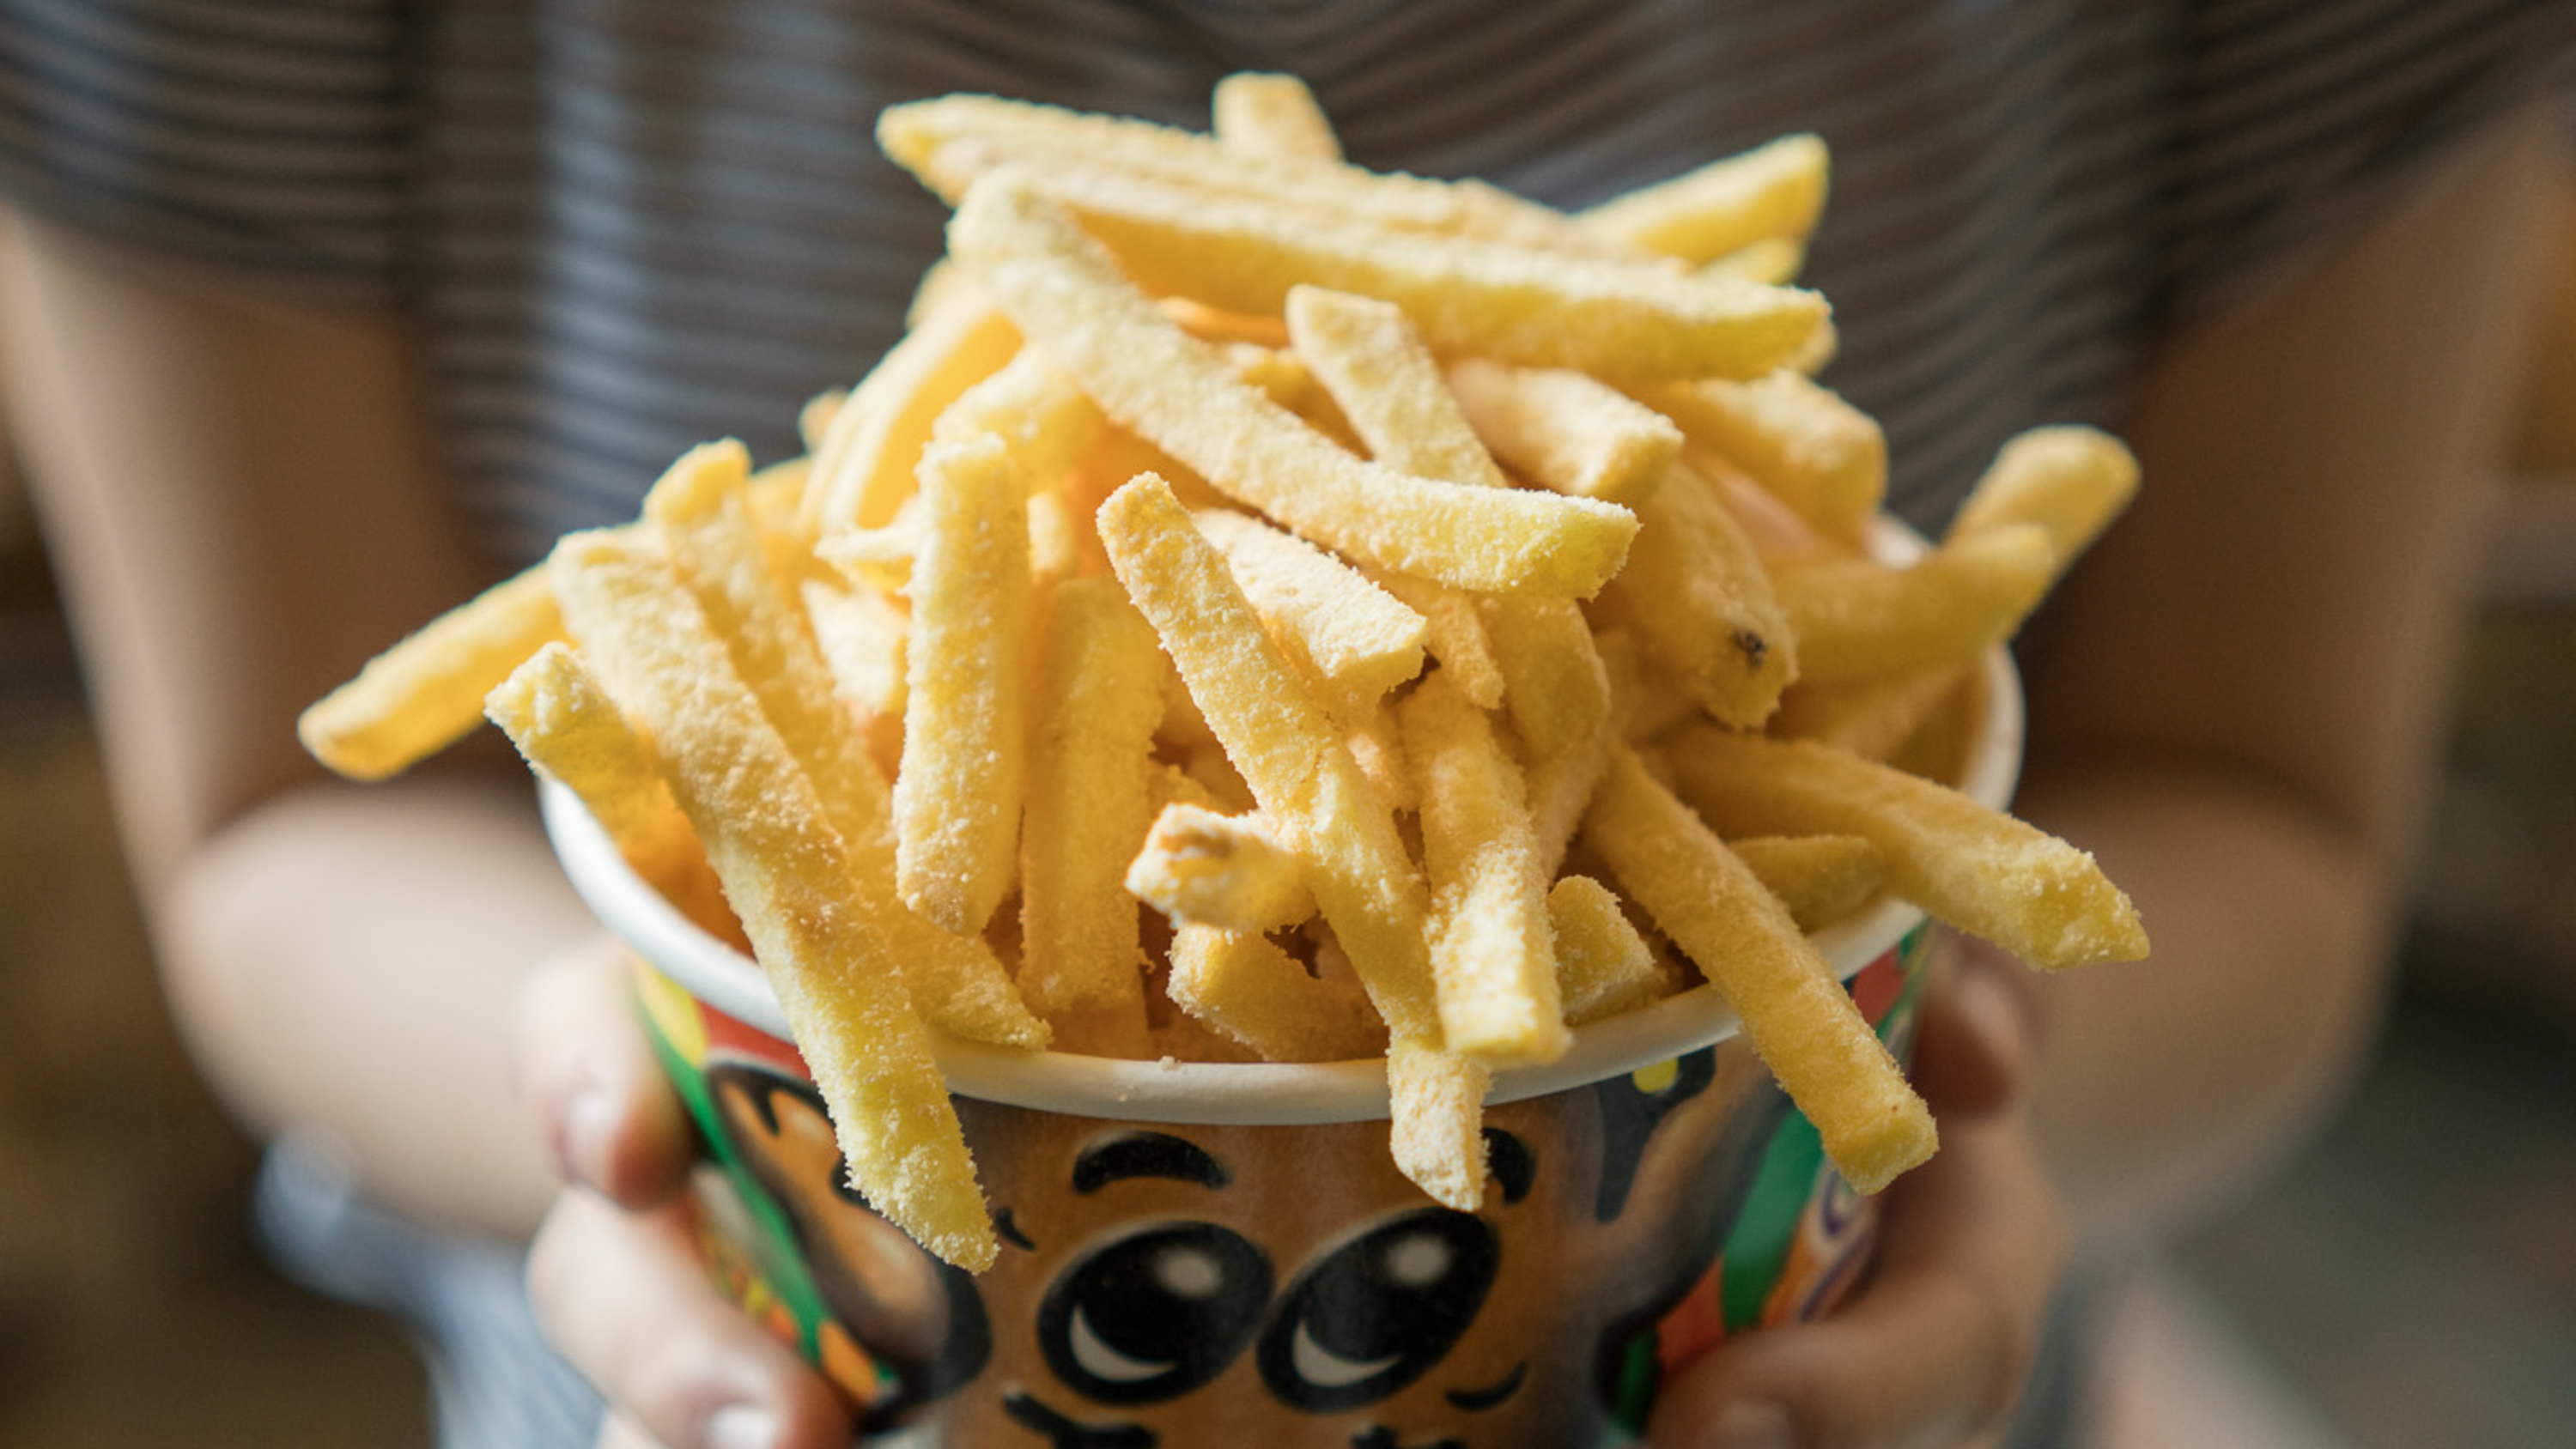 WATCH: Checking out Potato Corner's brand new flavor